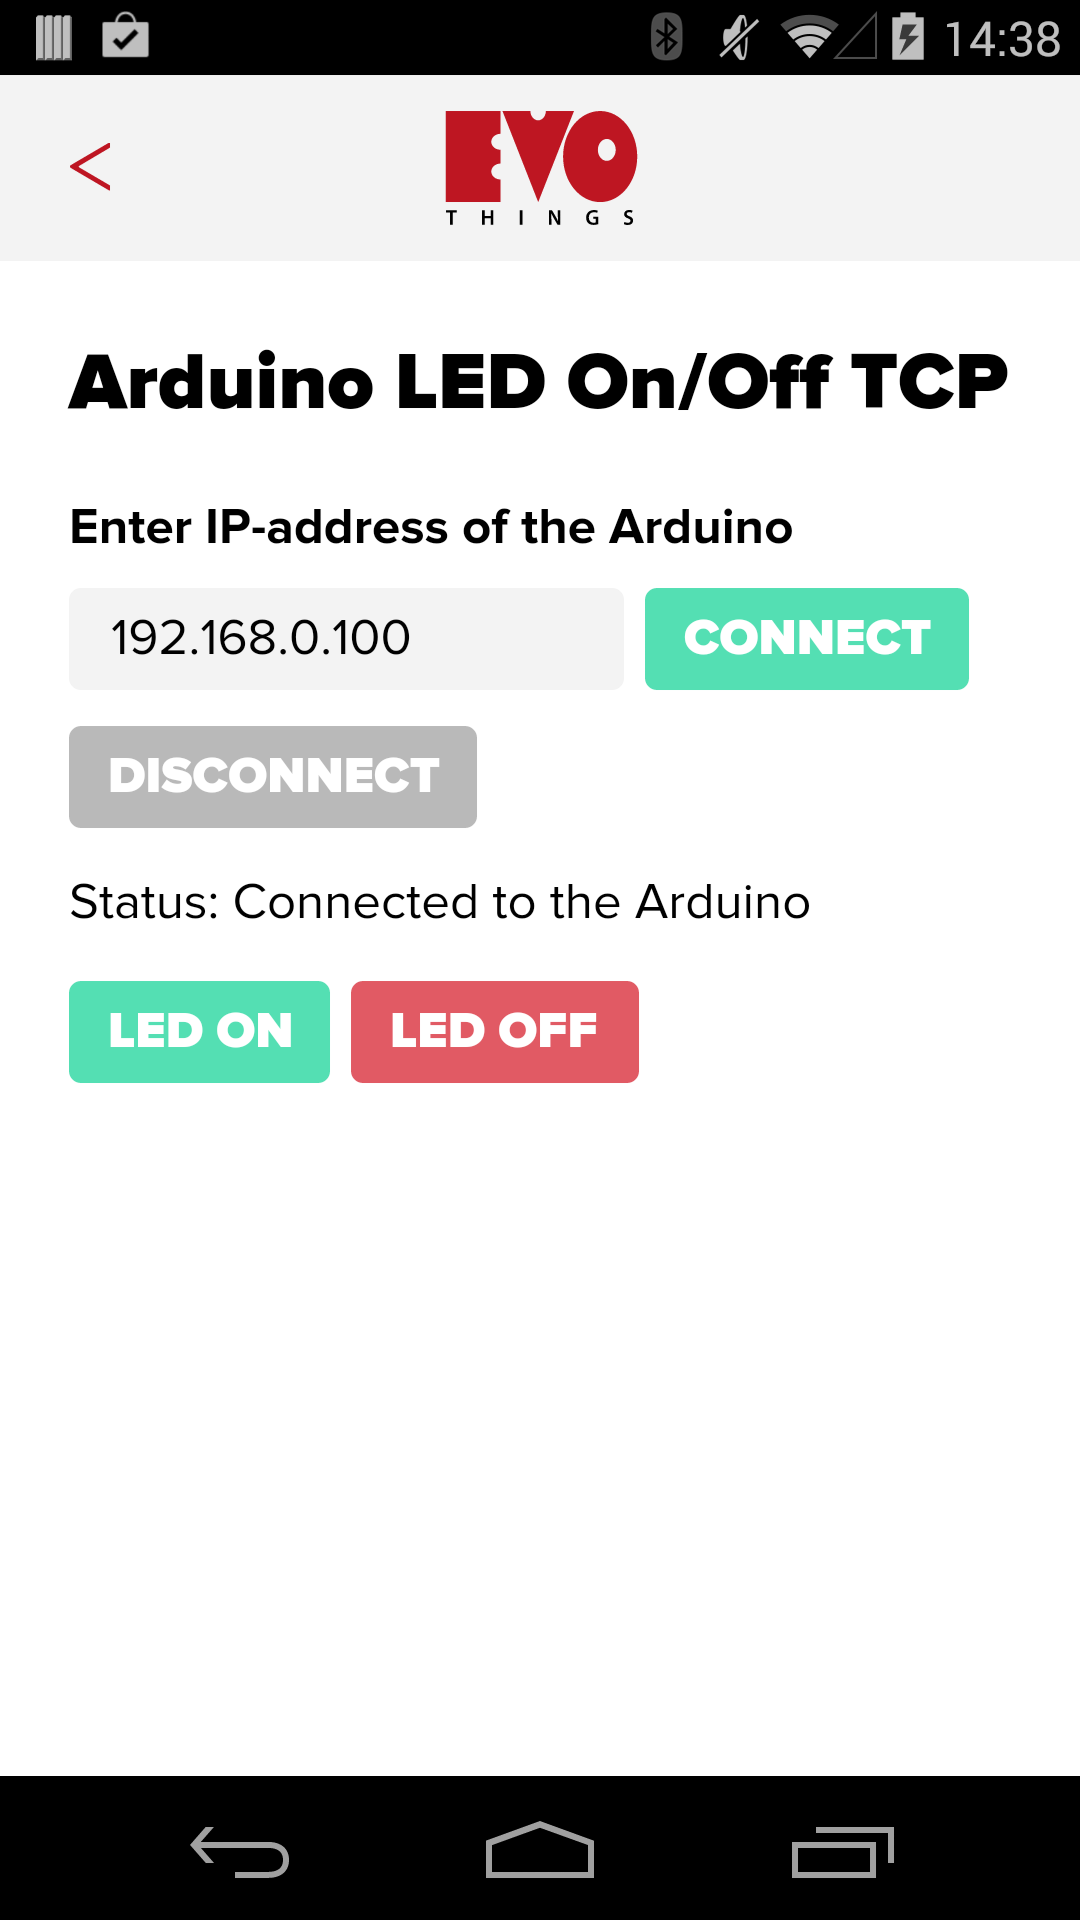 Arduino LED On/Off TCP Example